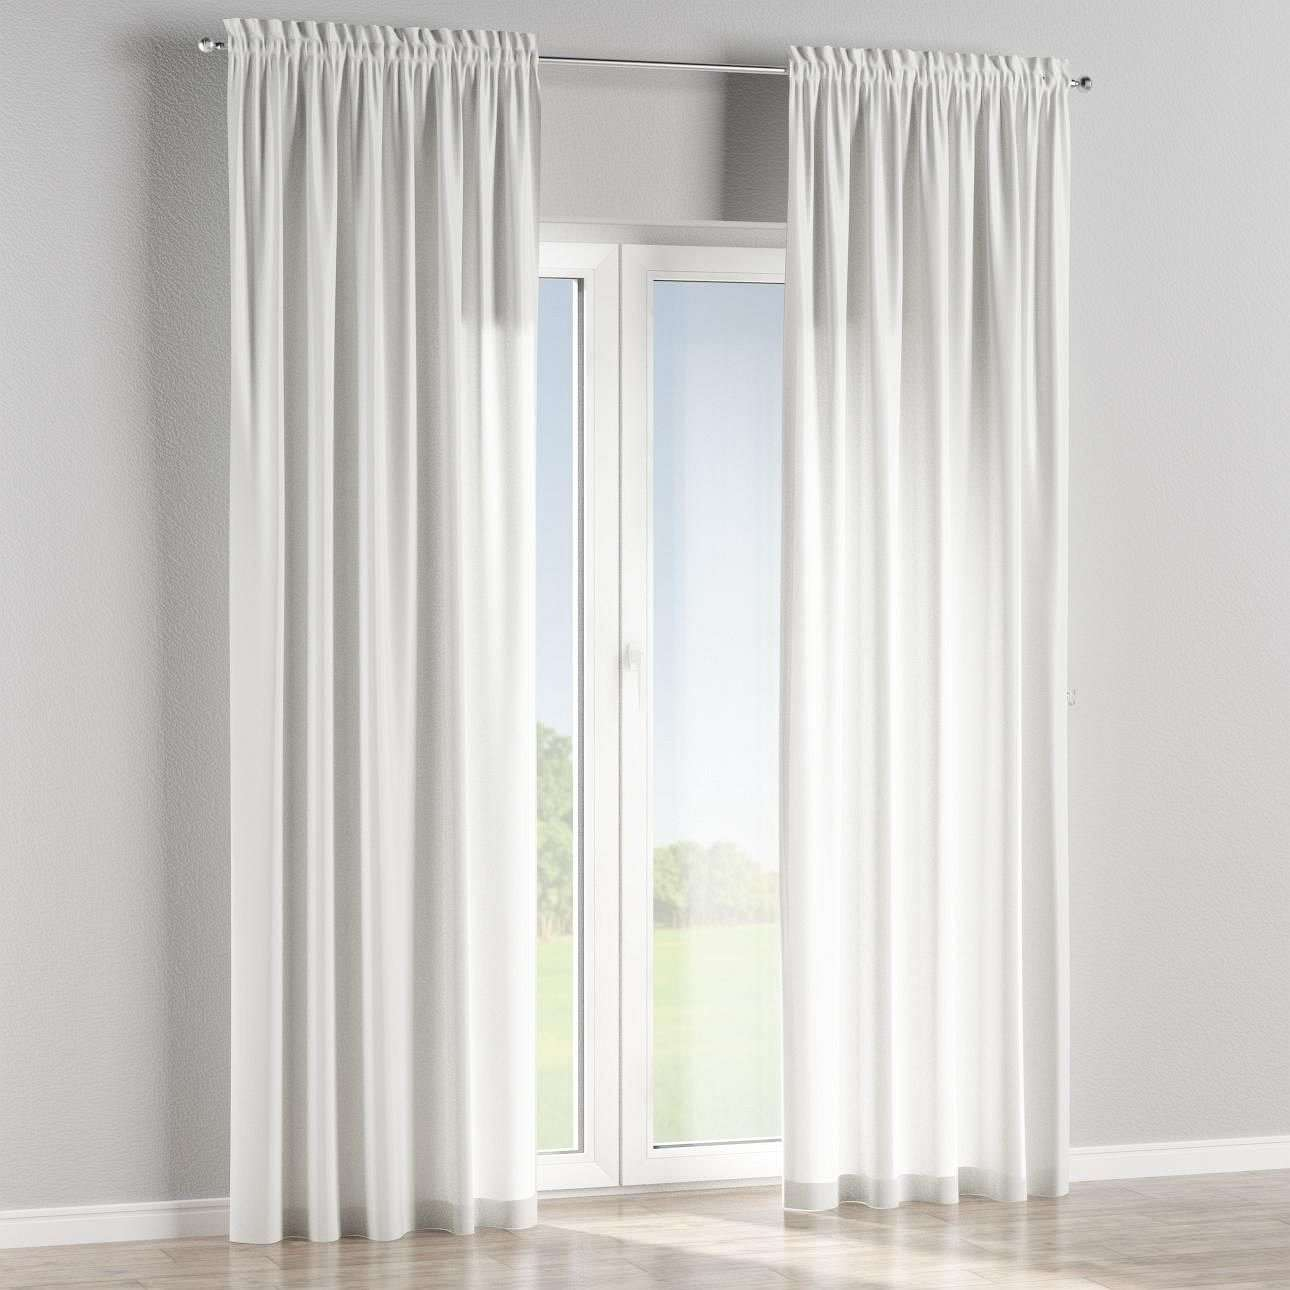 Slot and frill curtains in collection Venice, fabric: 140-54